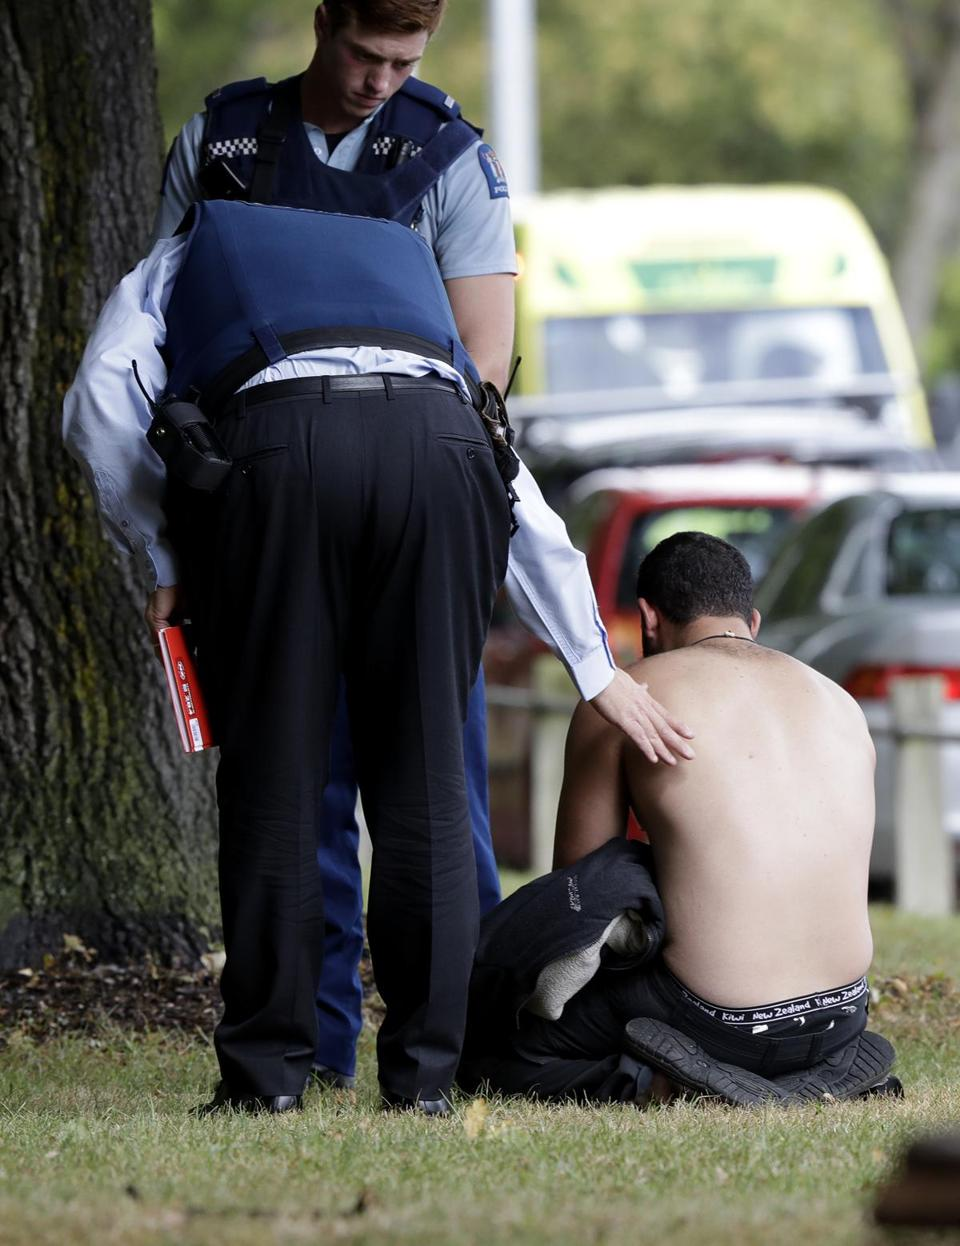 Police officers consoled a man after the first reported mosque shooting.